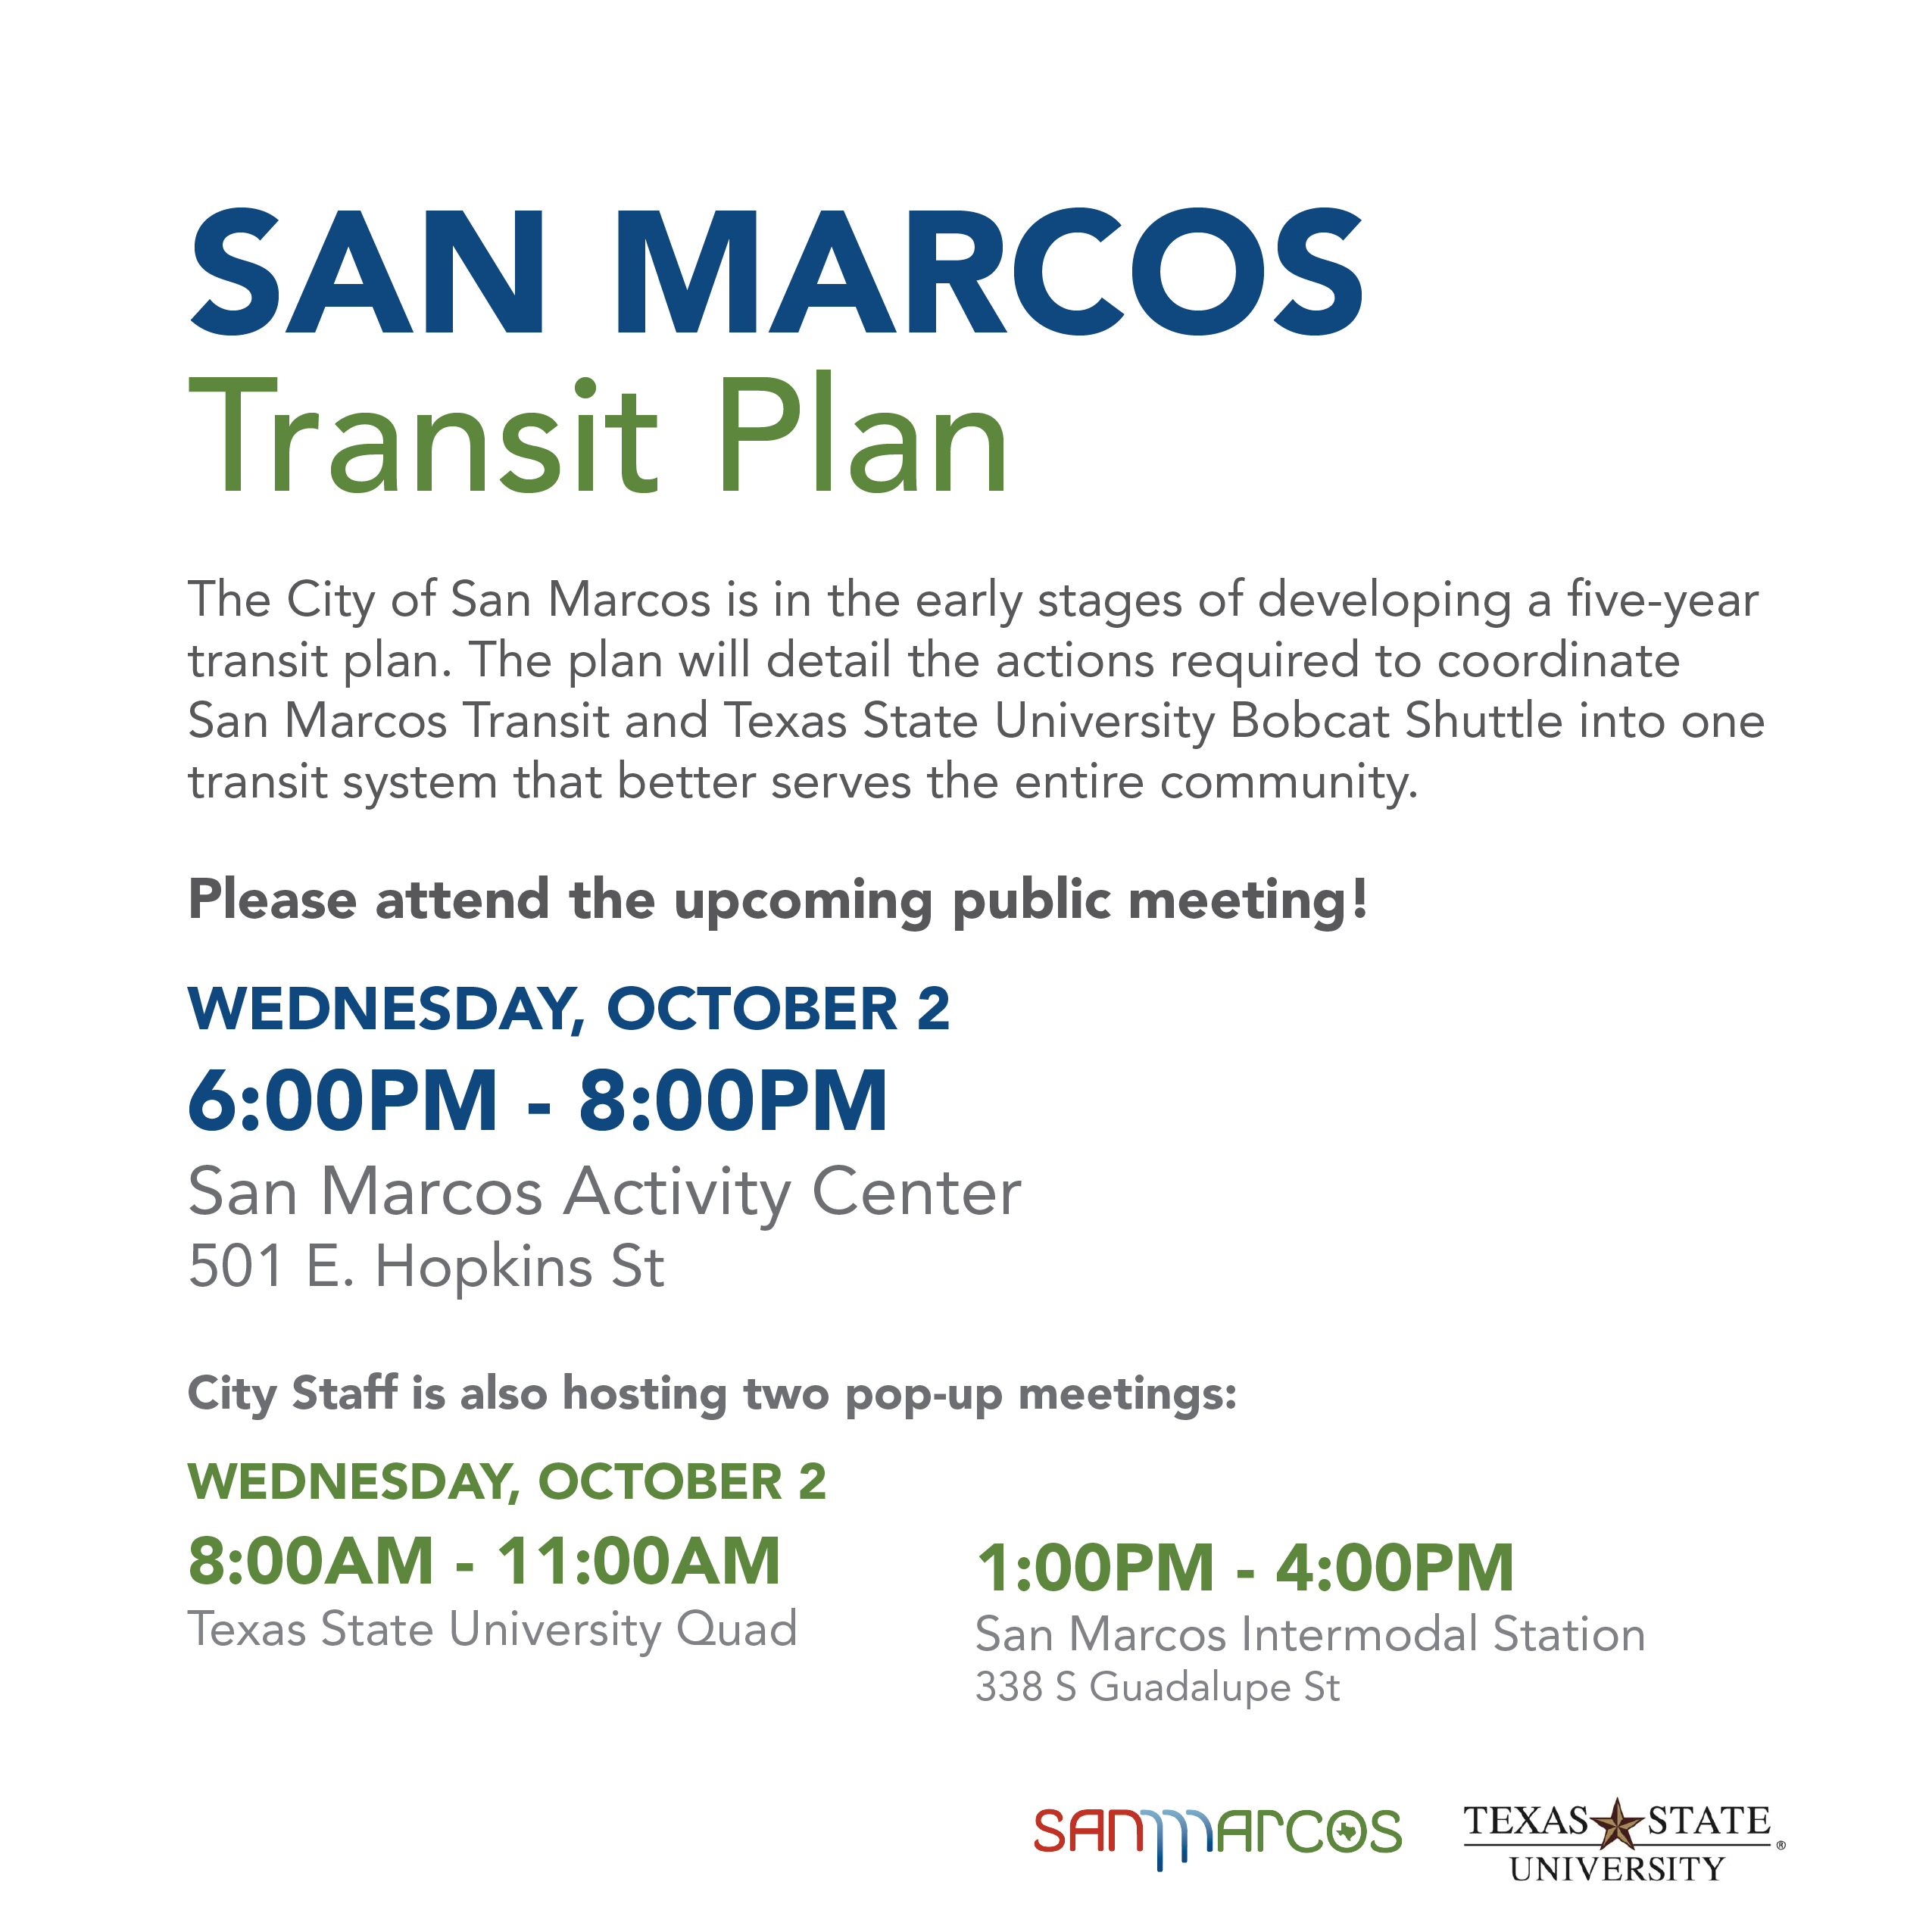 October 2, Transit five-year plan community meeting information